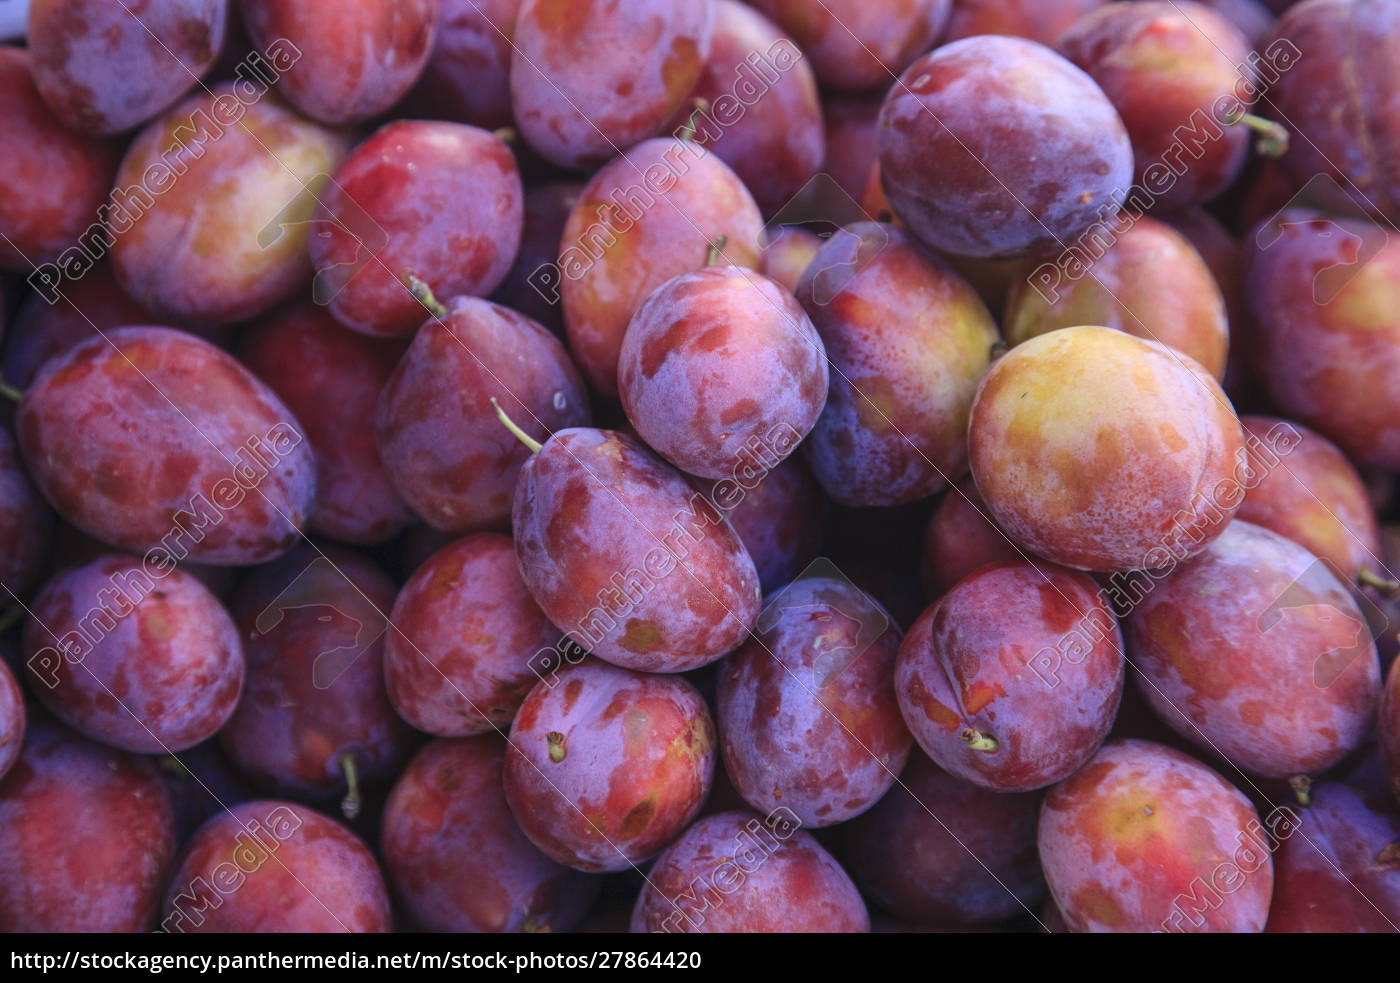 display, of, red, plums, in, the - 27864420